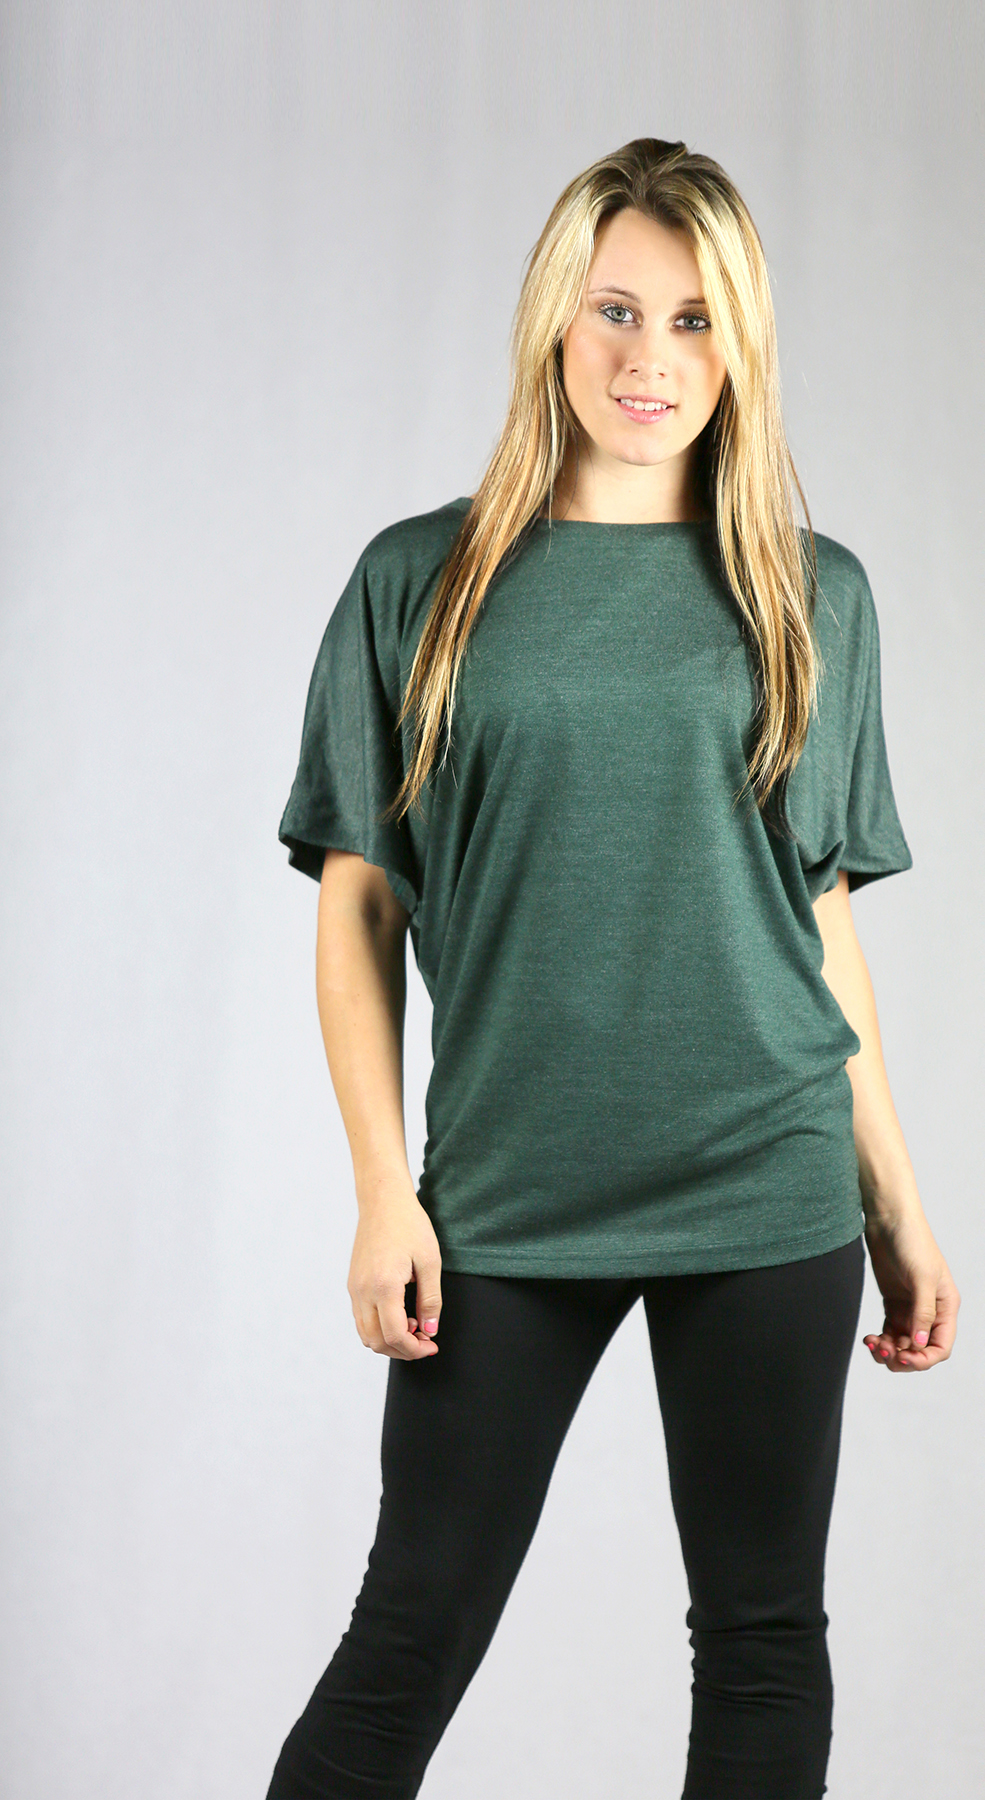 Monag 393015 - Short Sleeve Heather Dolman Tee